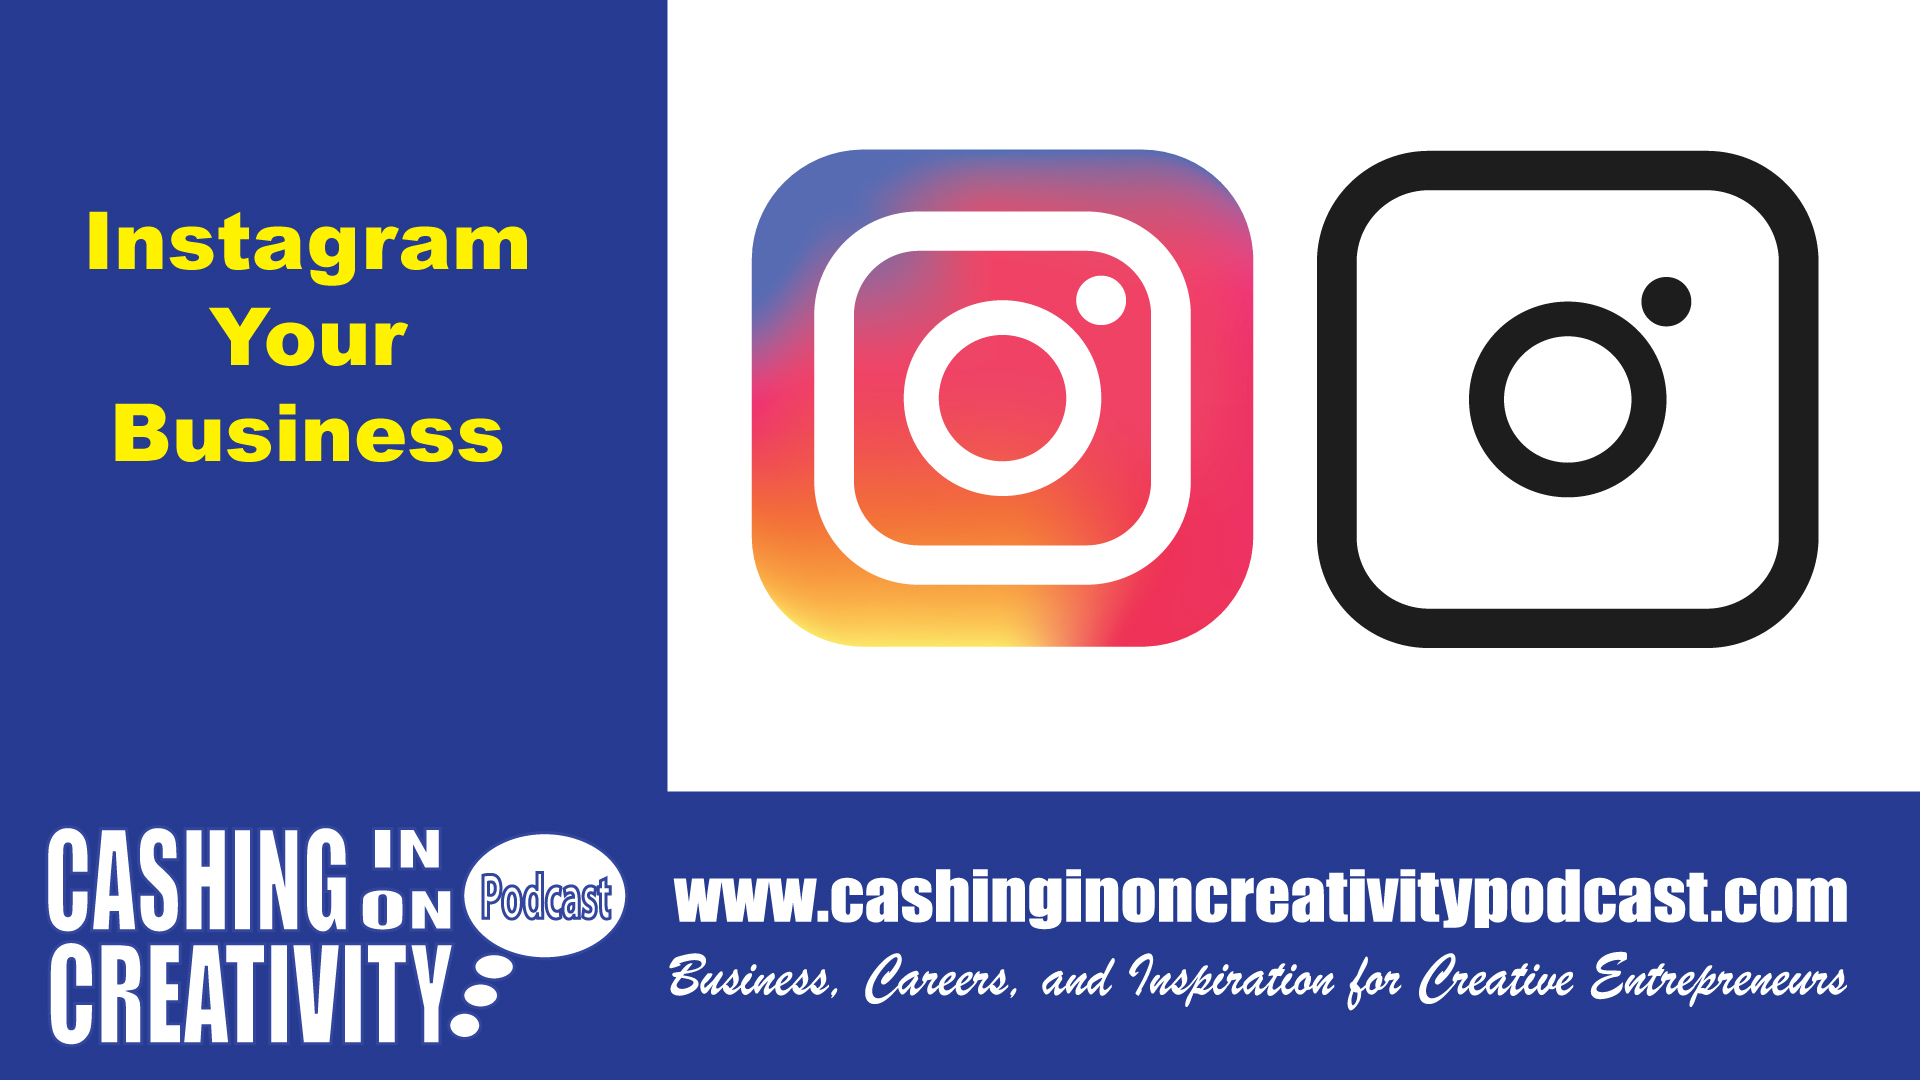 Instagram Your Business